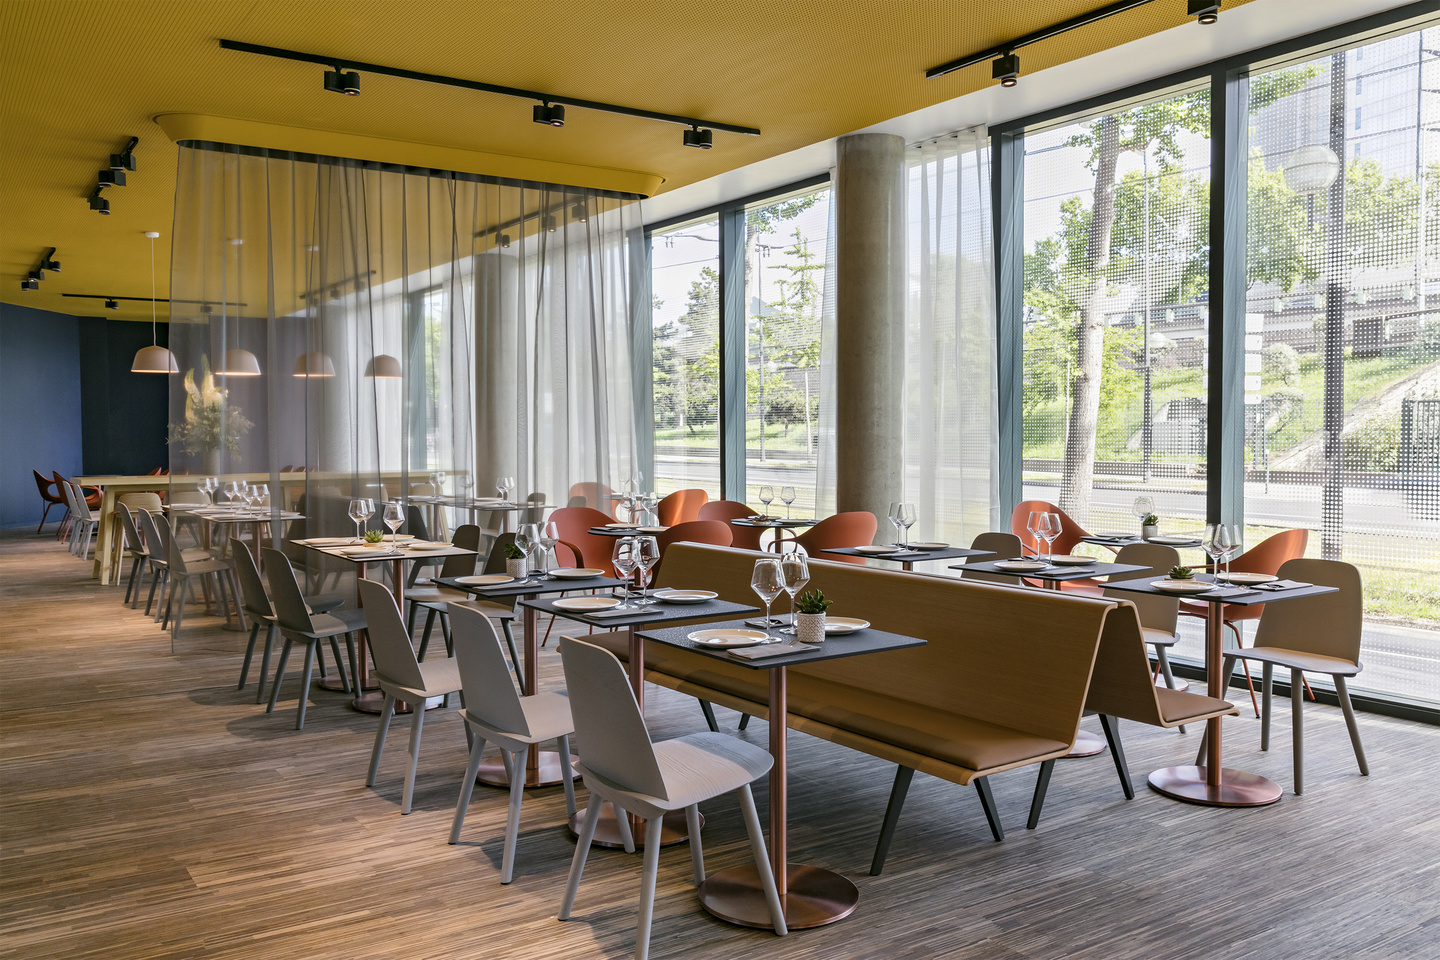 patrick norguet Patrick Norguet designs Colorful Interior for Okko Hotels Patrick Norguet designs Colorful Interior for Okko Hotels 9